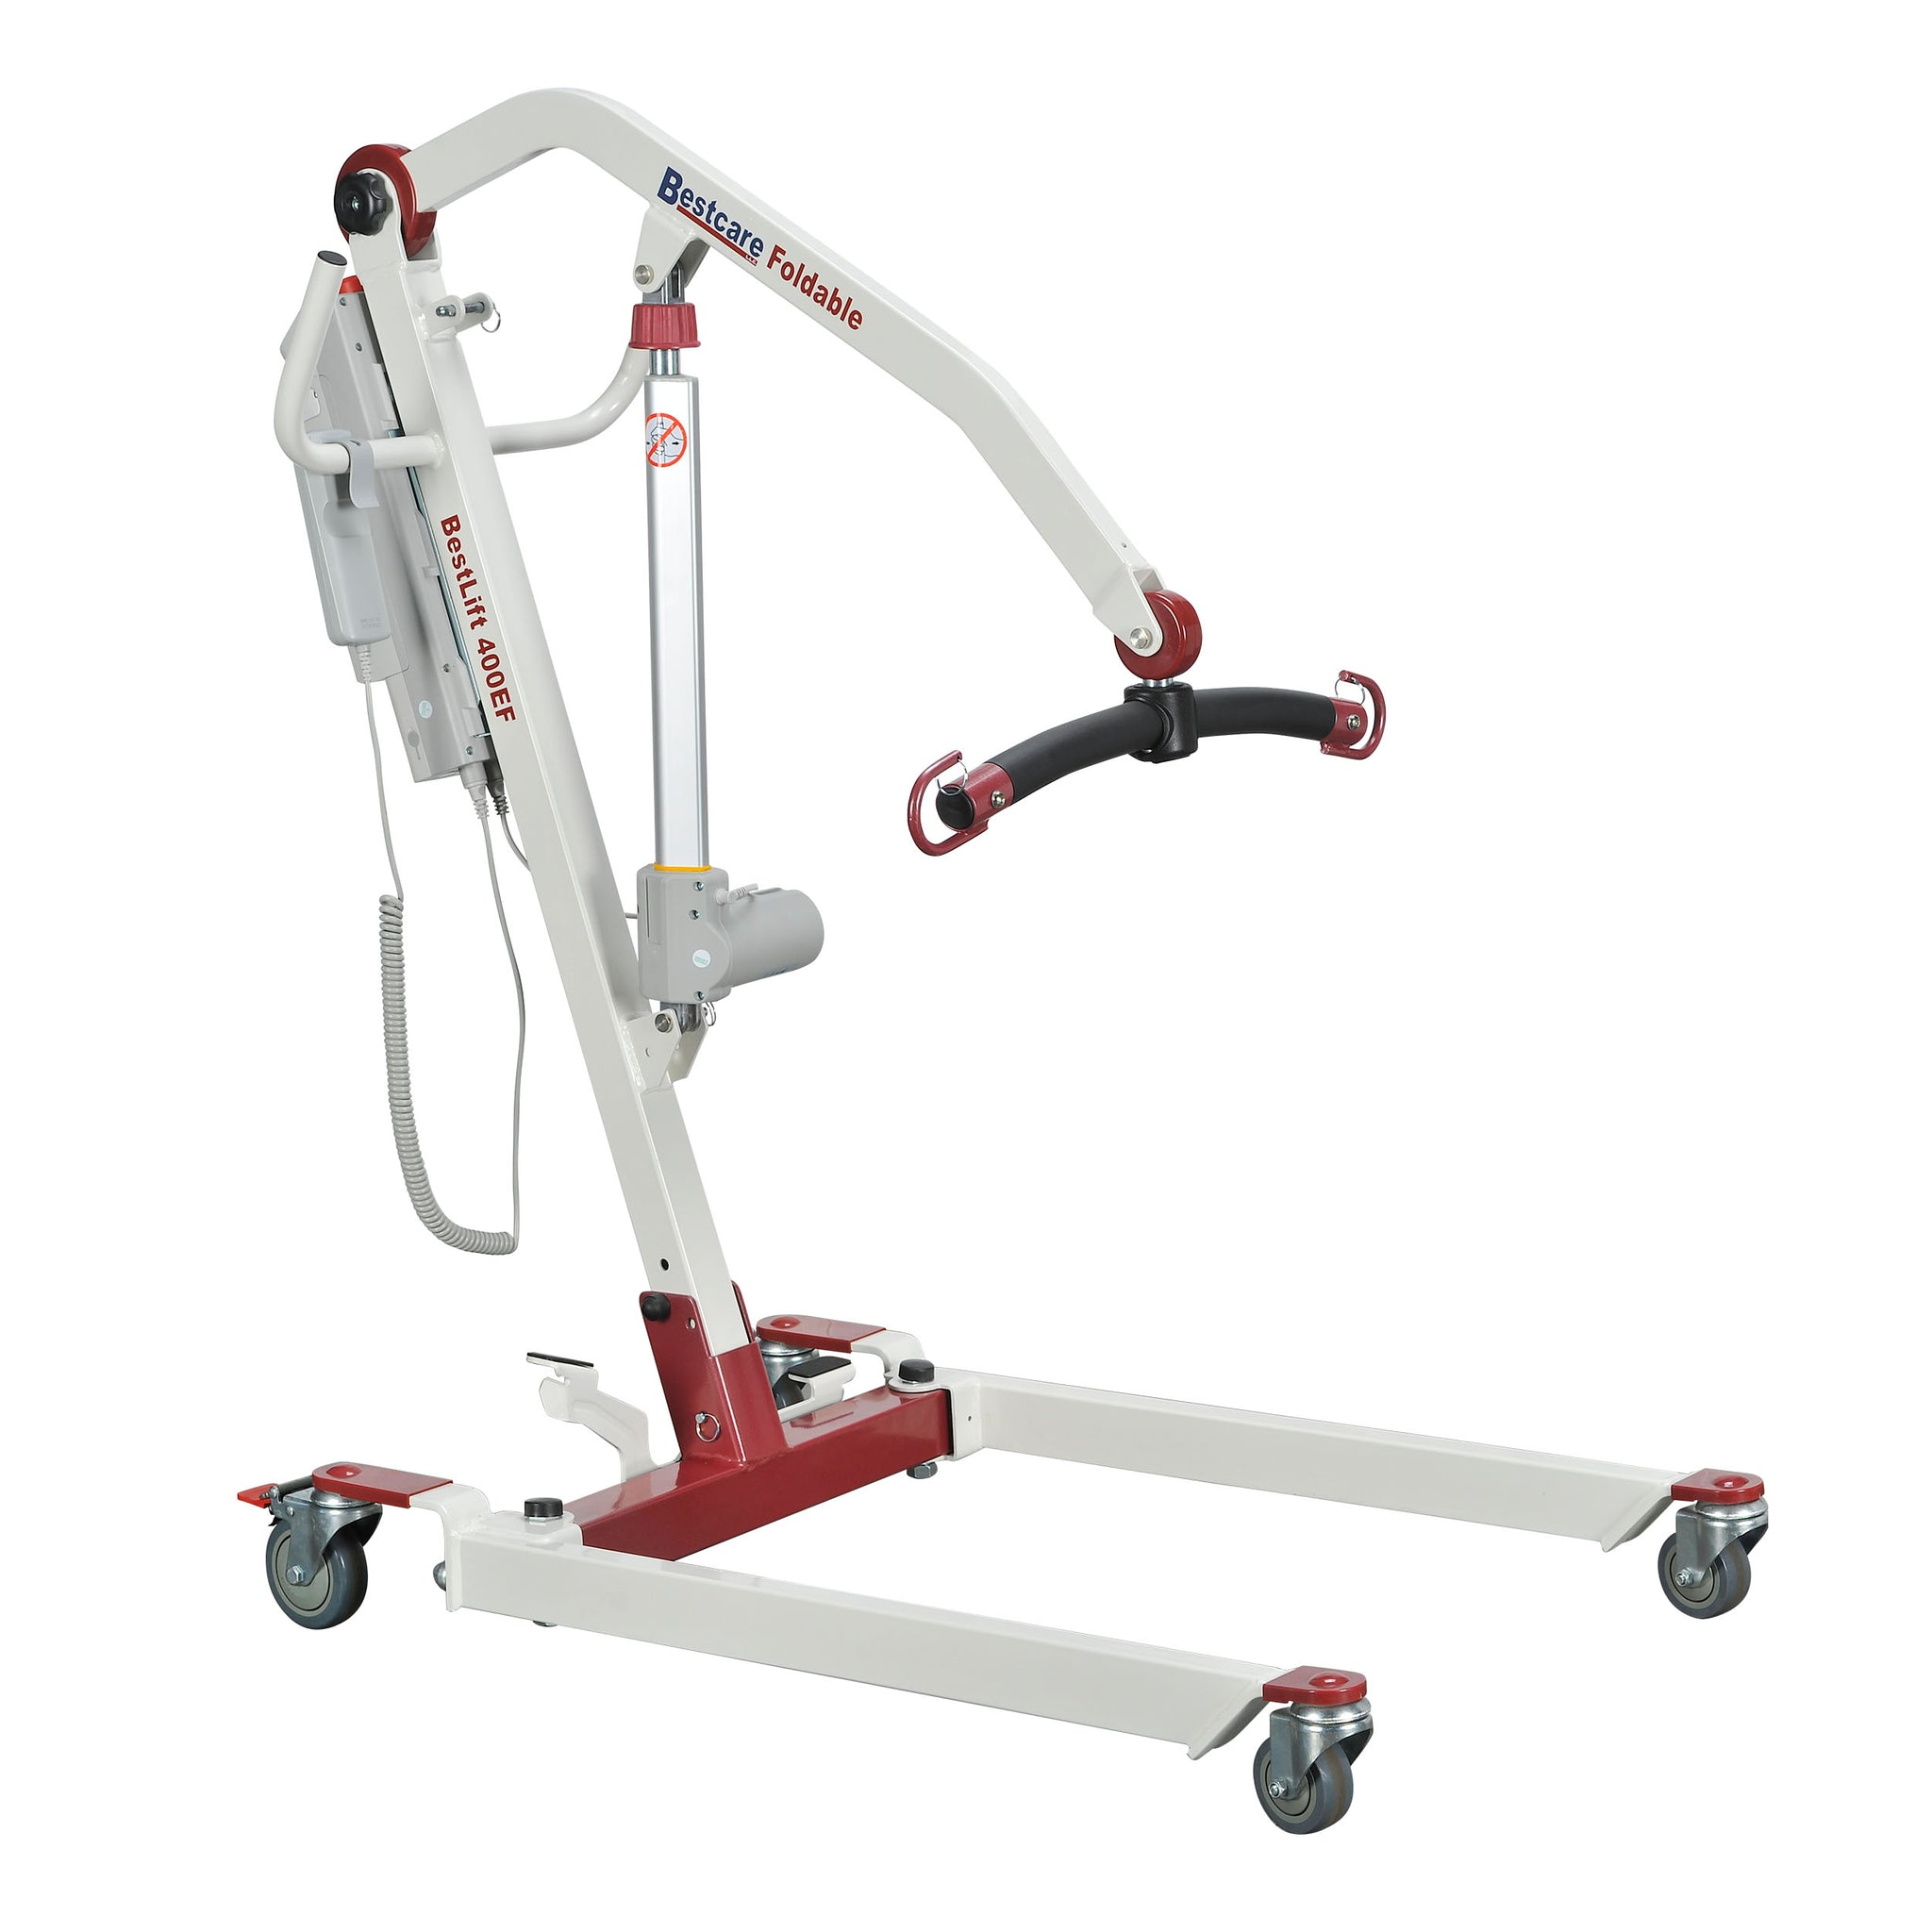 Bestcare PL400EF – Foldable/Portable/Transportable Mobile Floor Lift